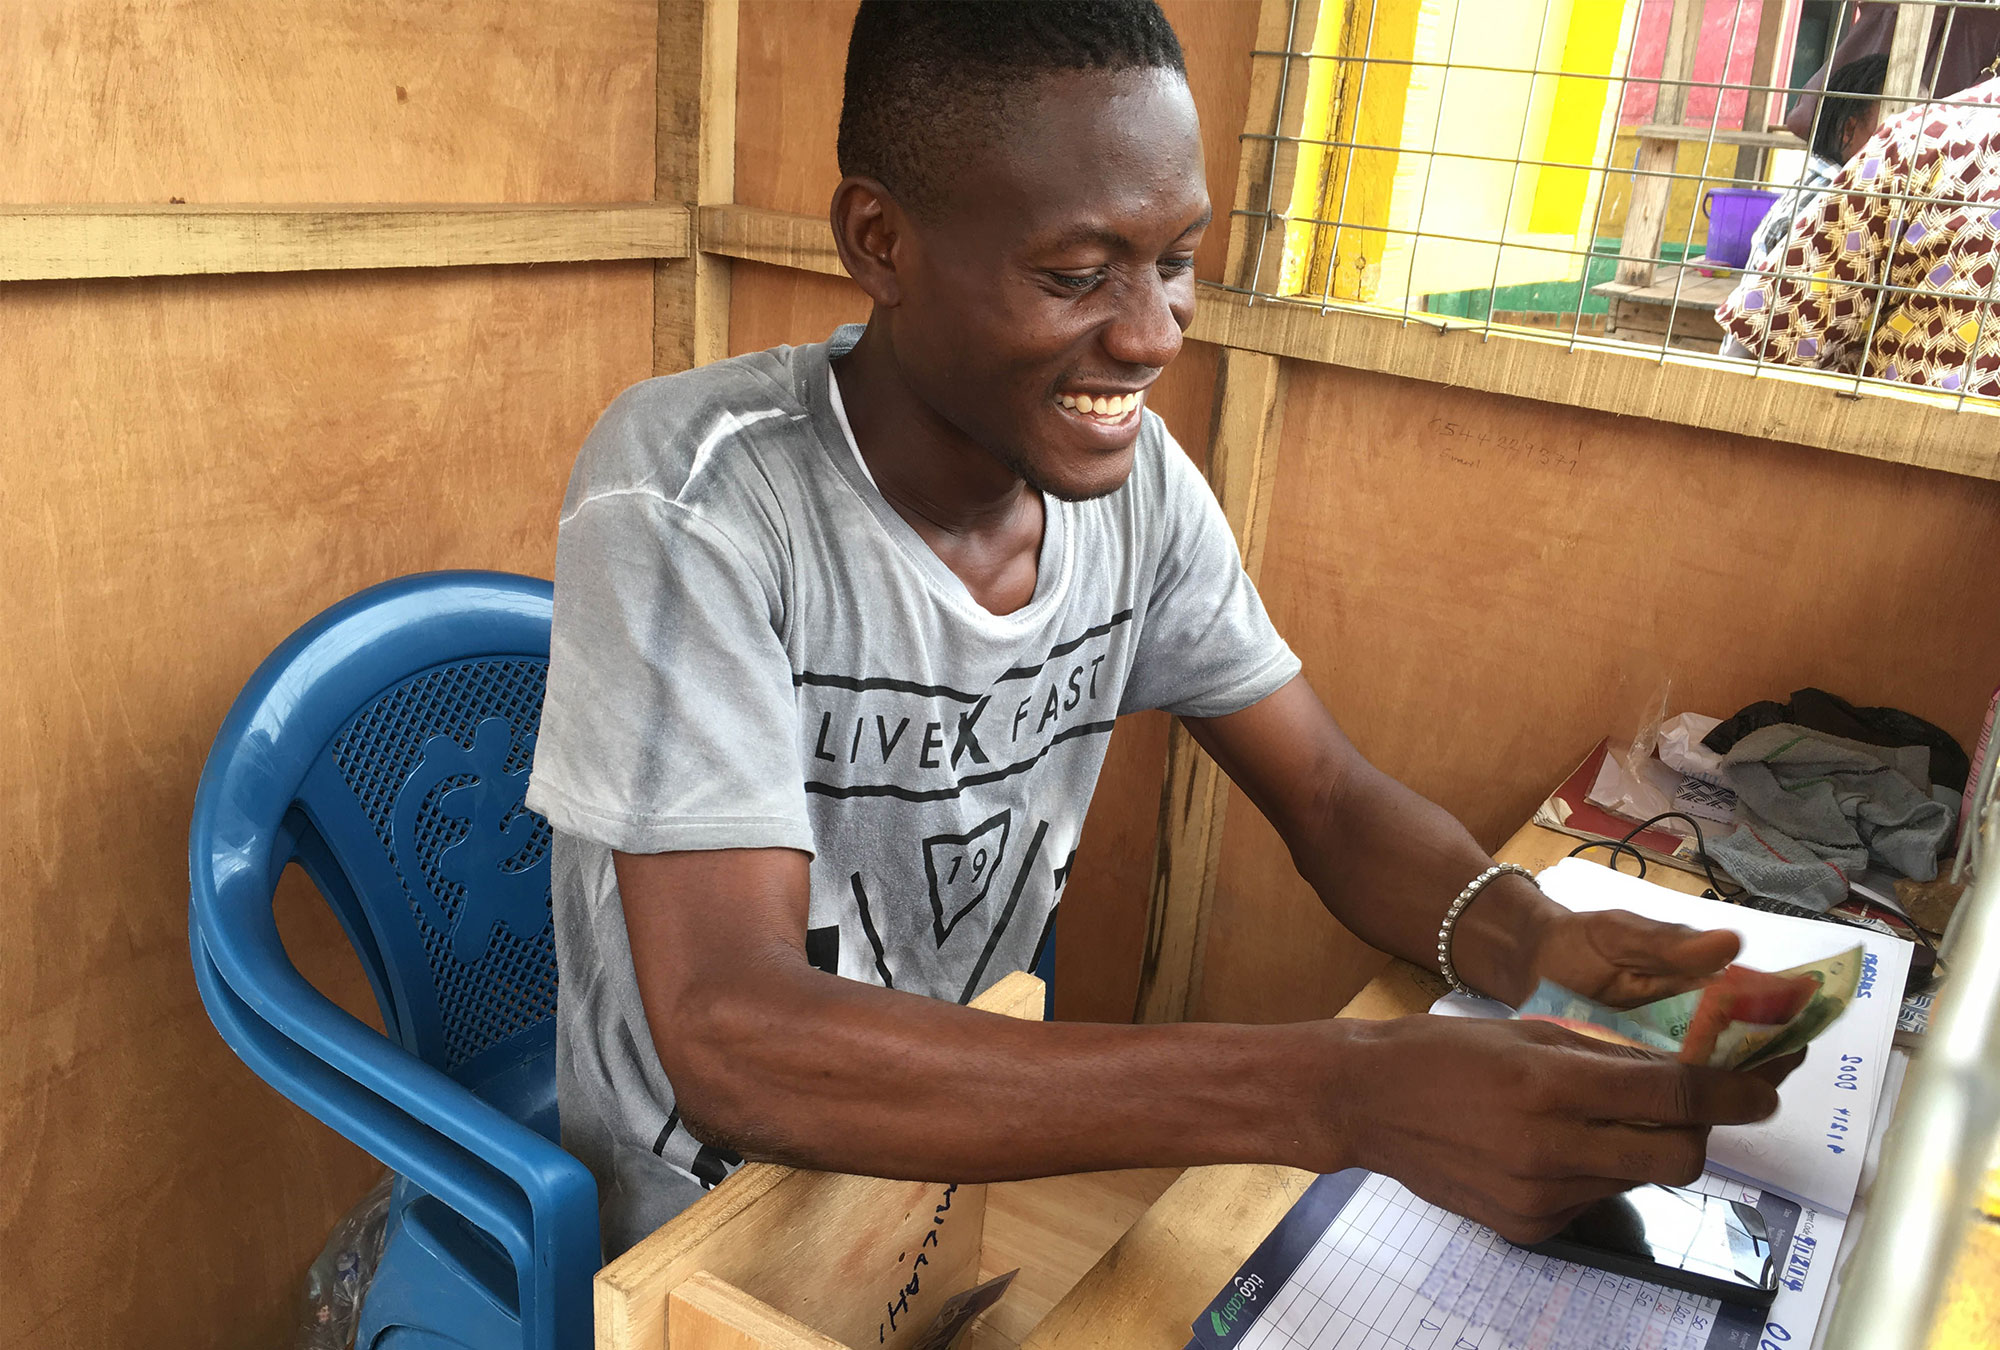 Man smiles while counting money